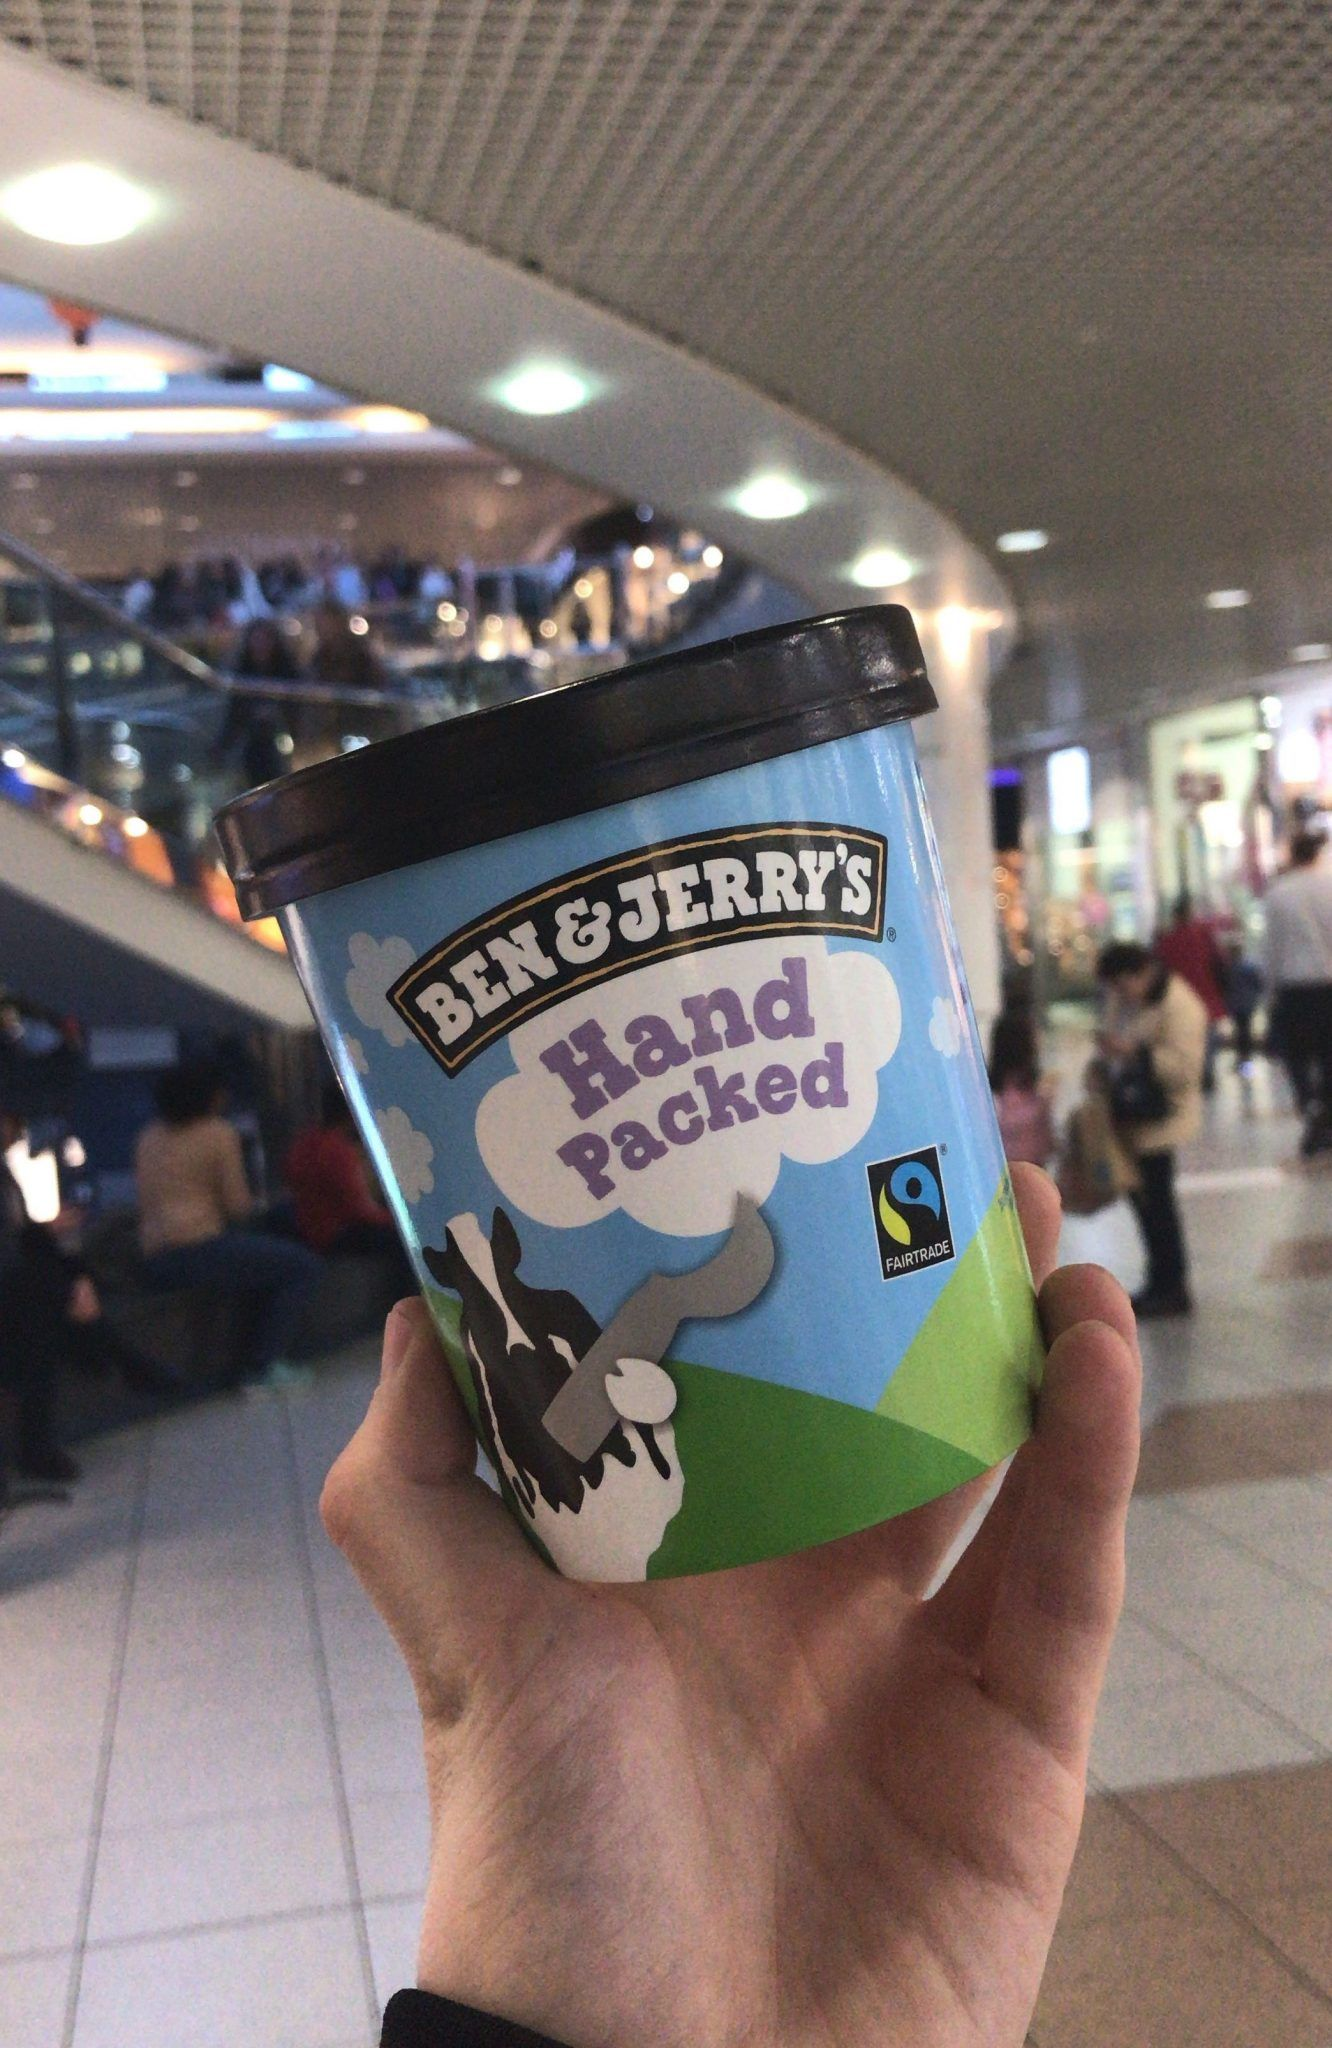 Ben and jerry's hand-packed pint